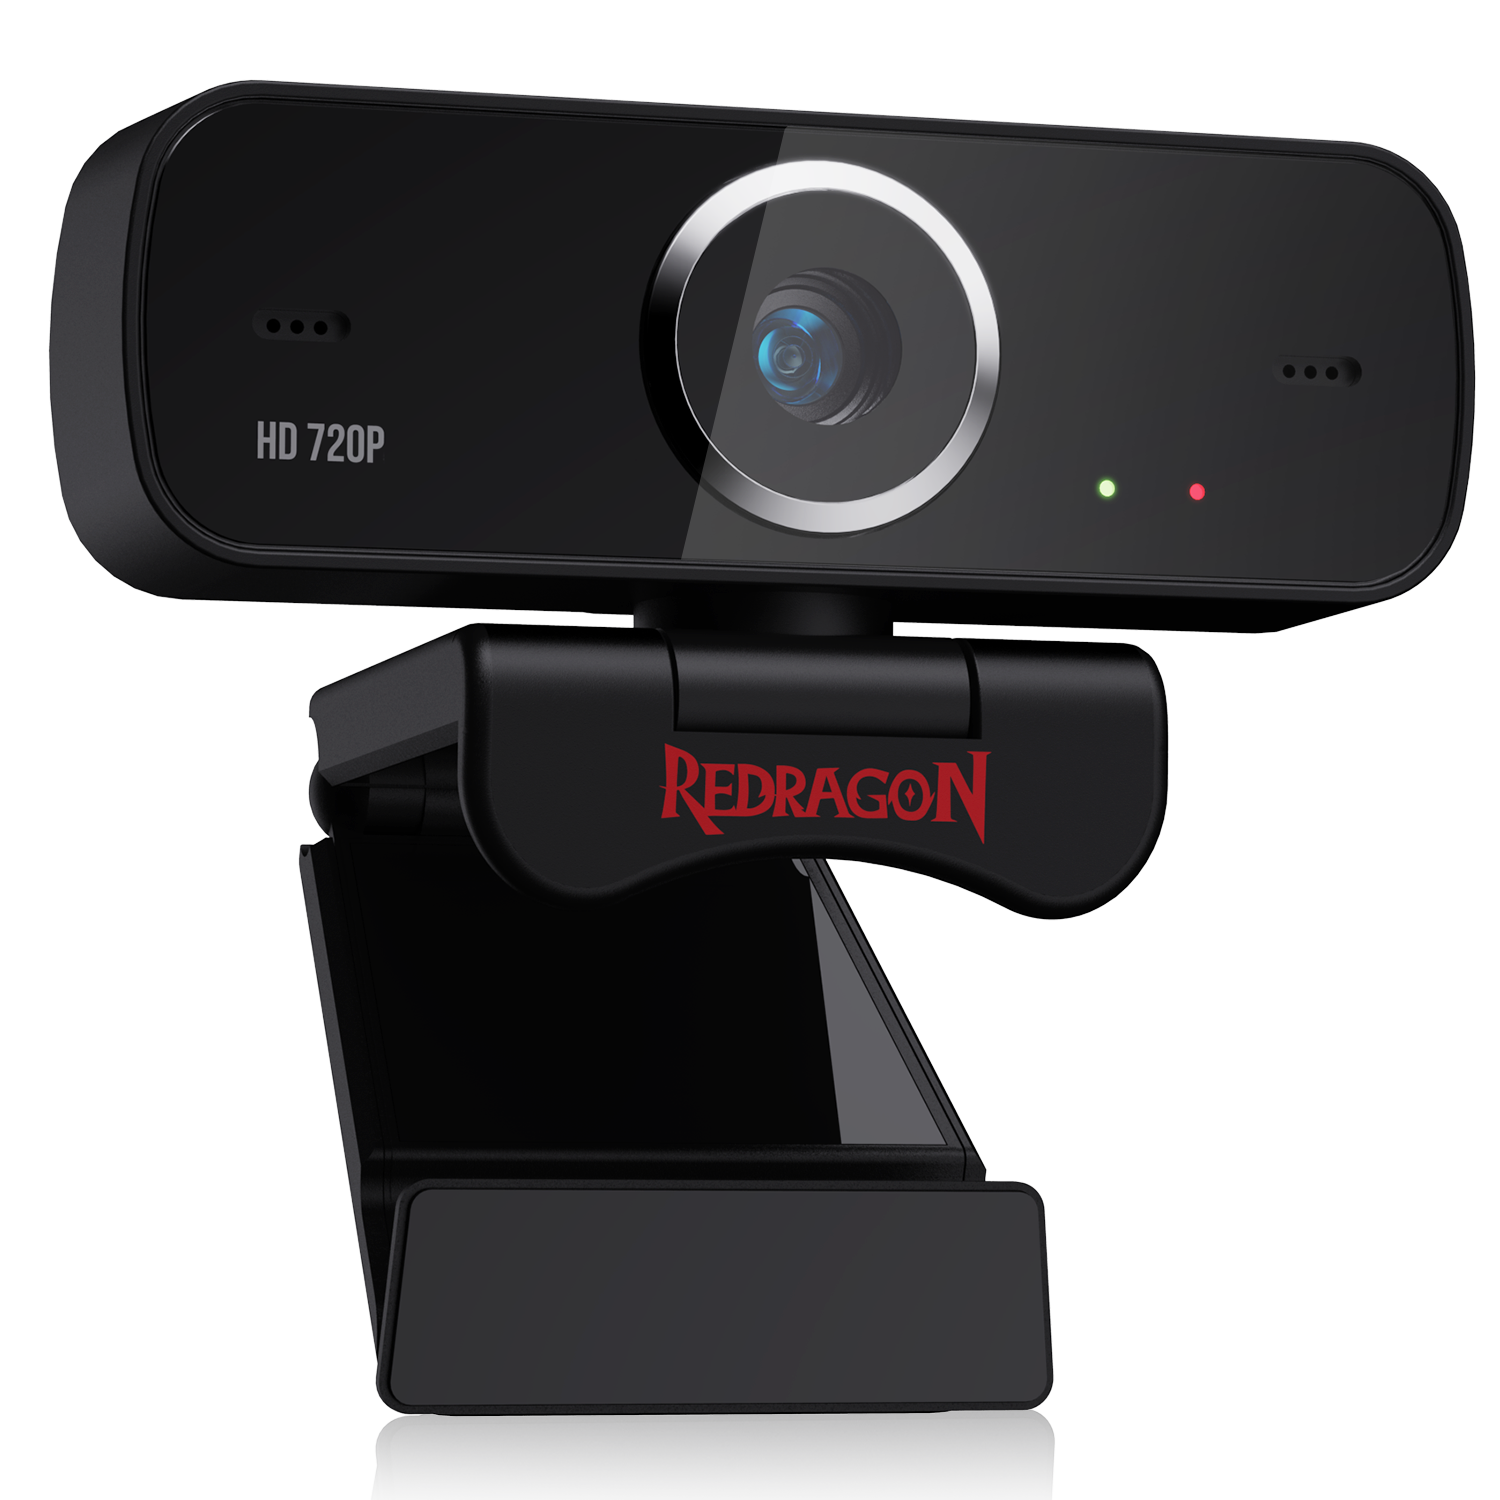 redragon webcam 720p